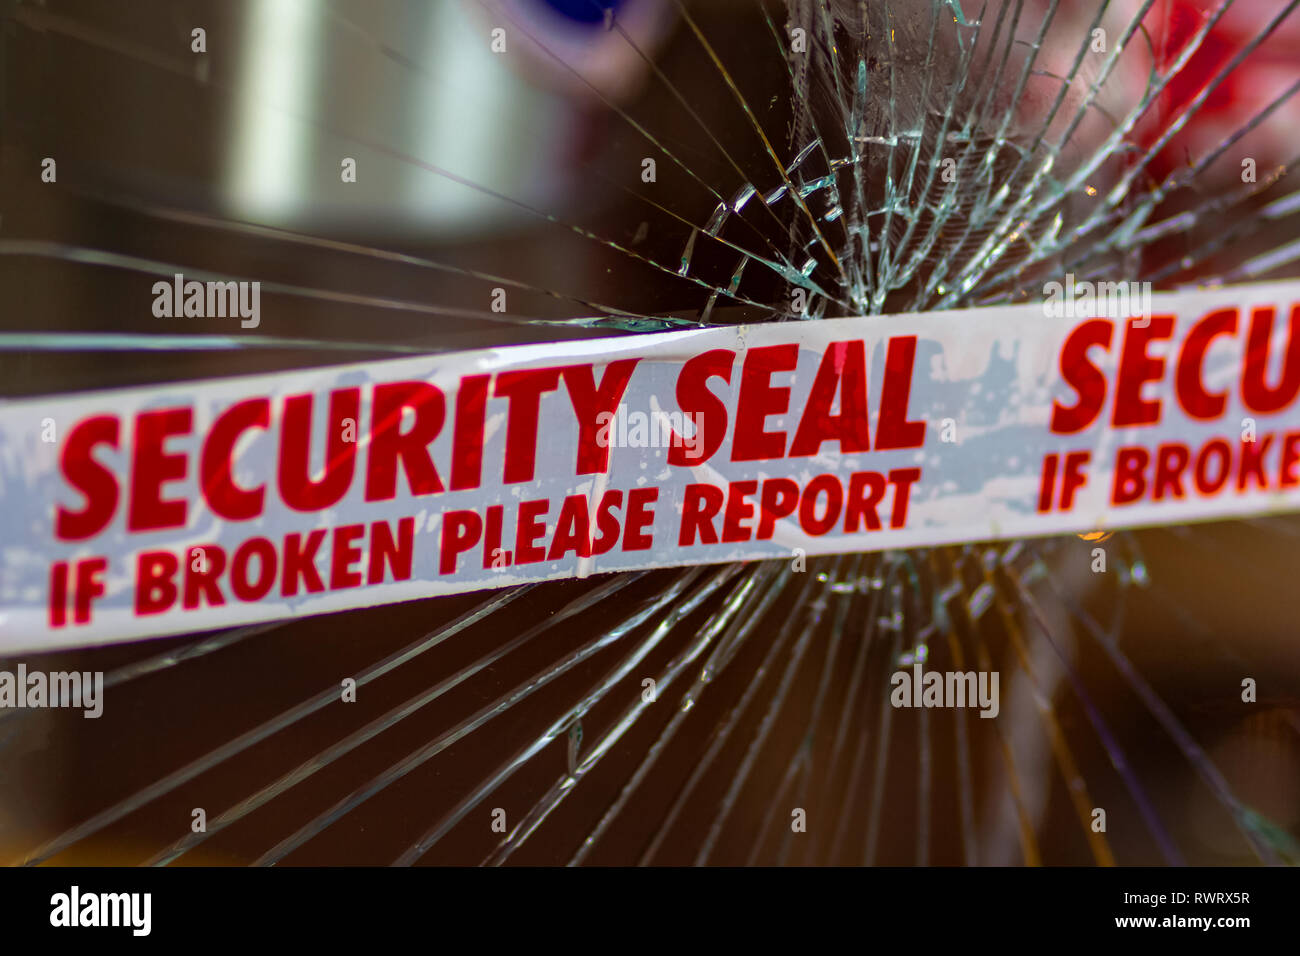 Police Security Seal tape across broken glass window - Stock Image